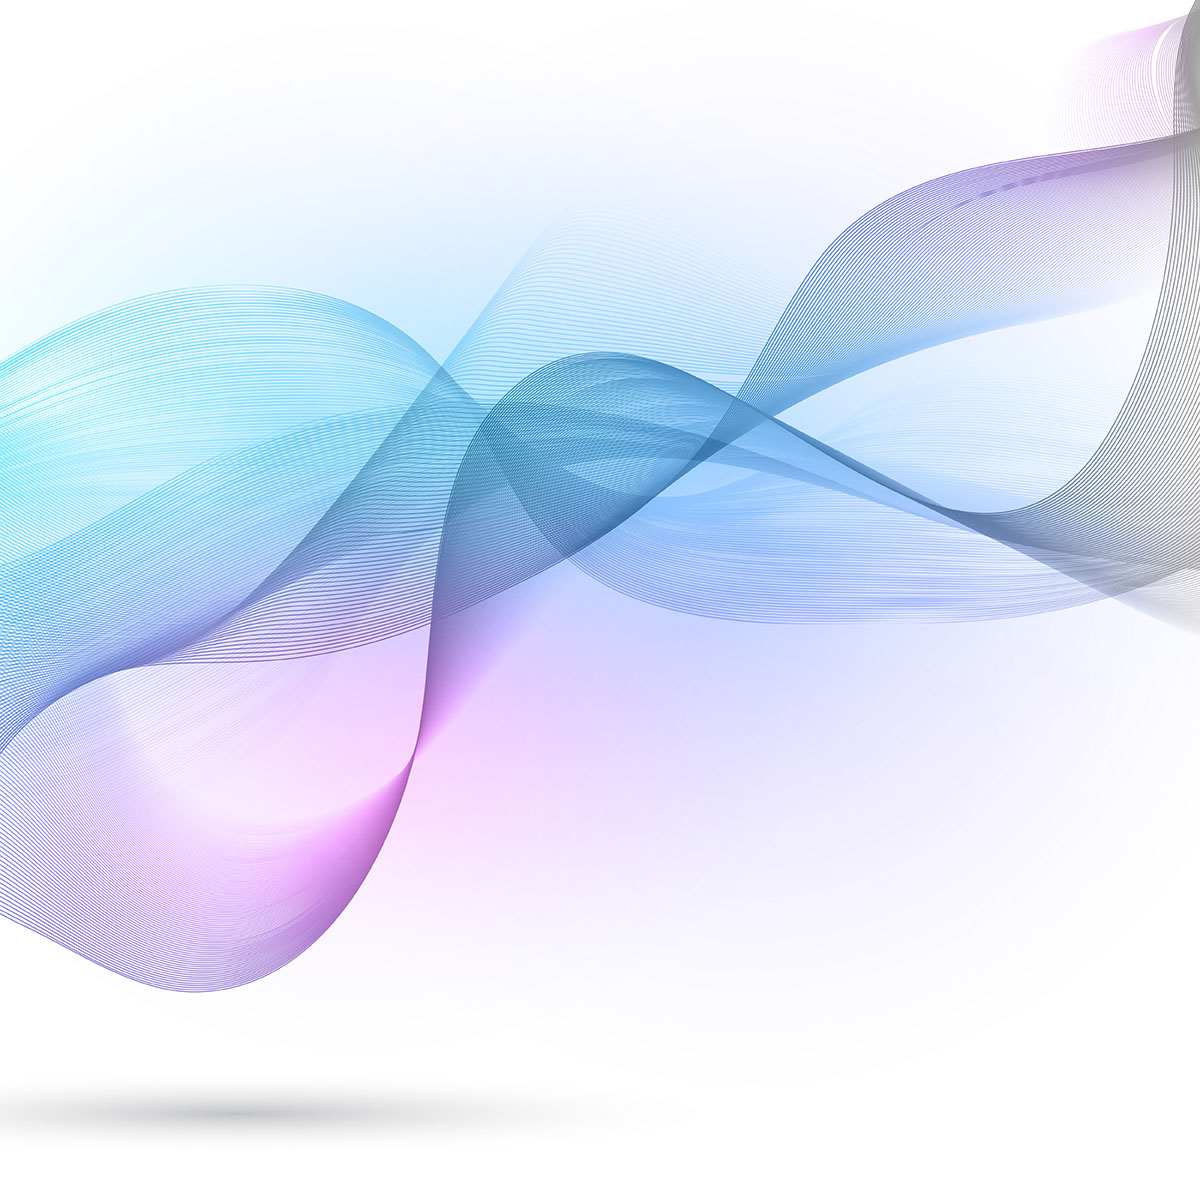 Abstract waves background - Download Free Vectors, Clipart ...